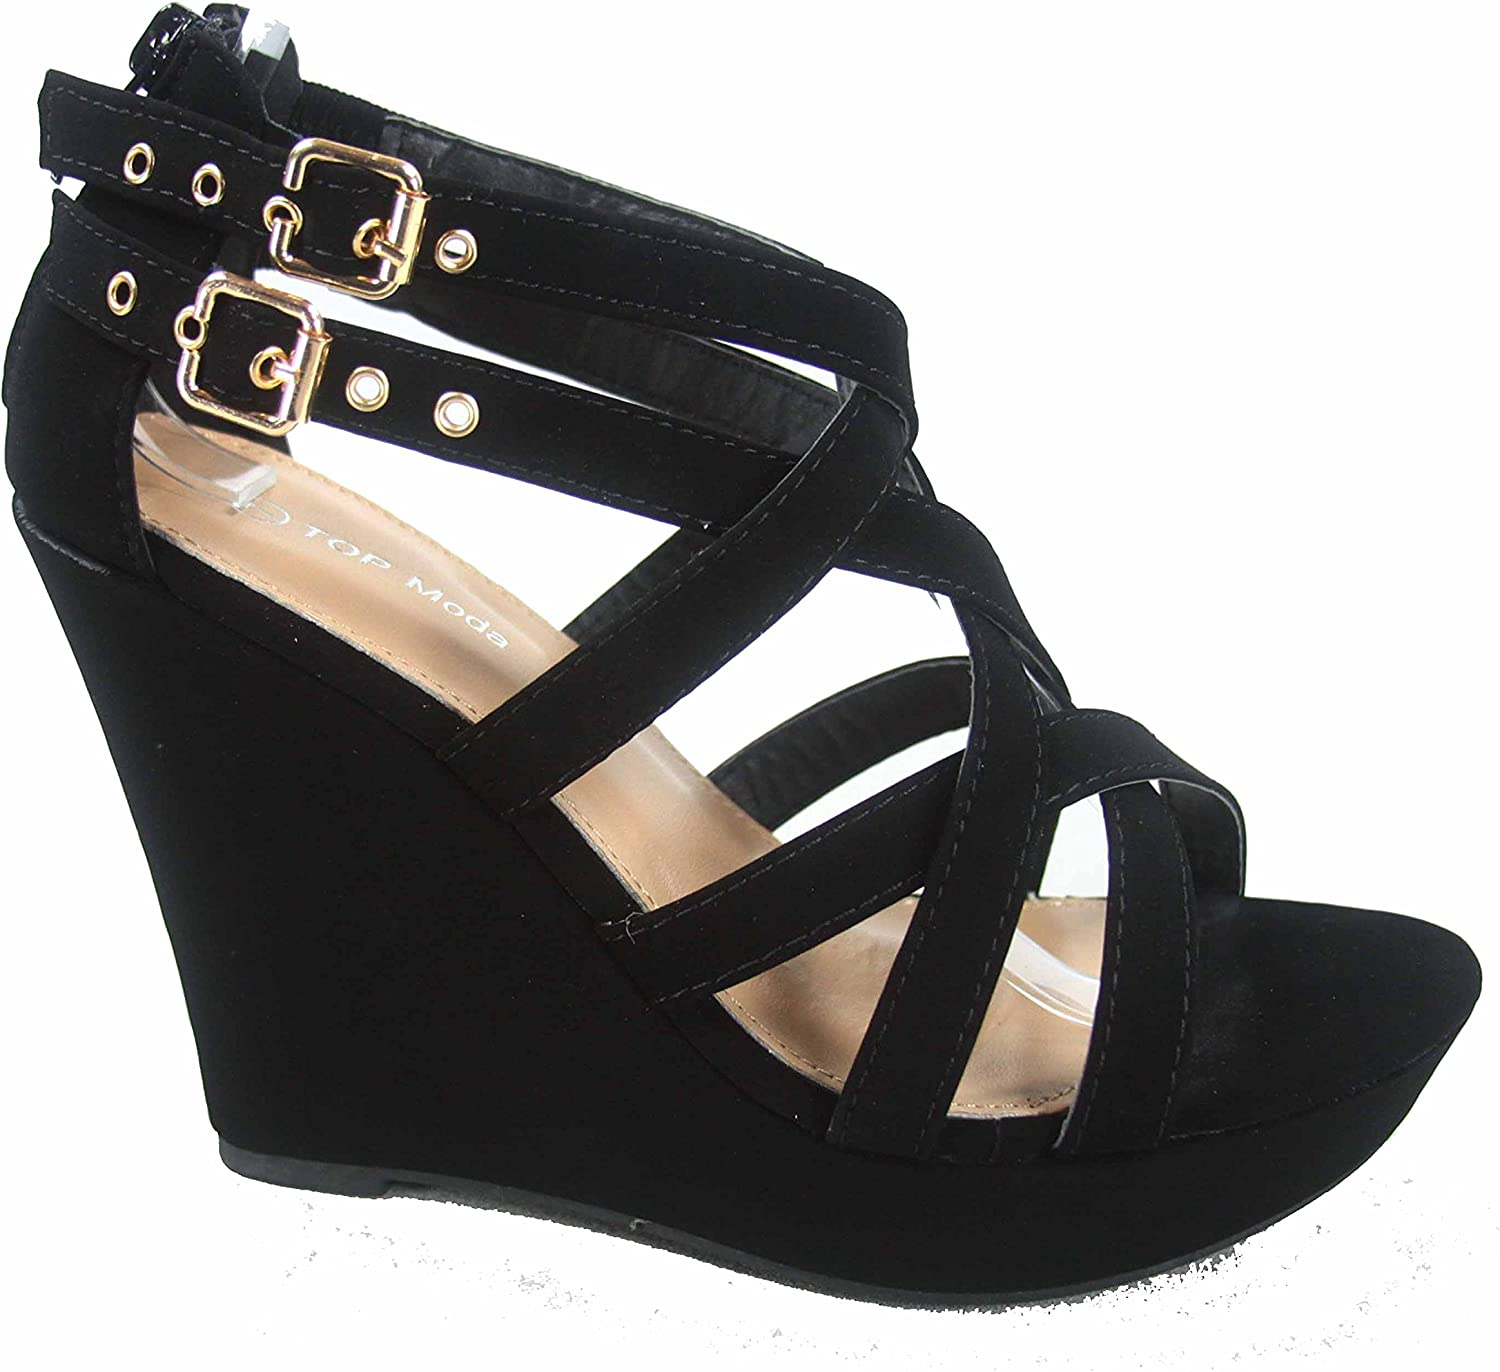 Top Moda Jessie-1 Women's Fashion Strappy Double Buckles High Wedge Heel Sandal shoes